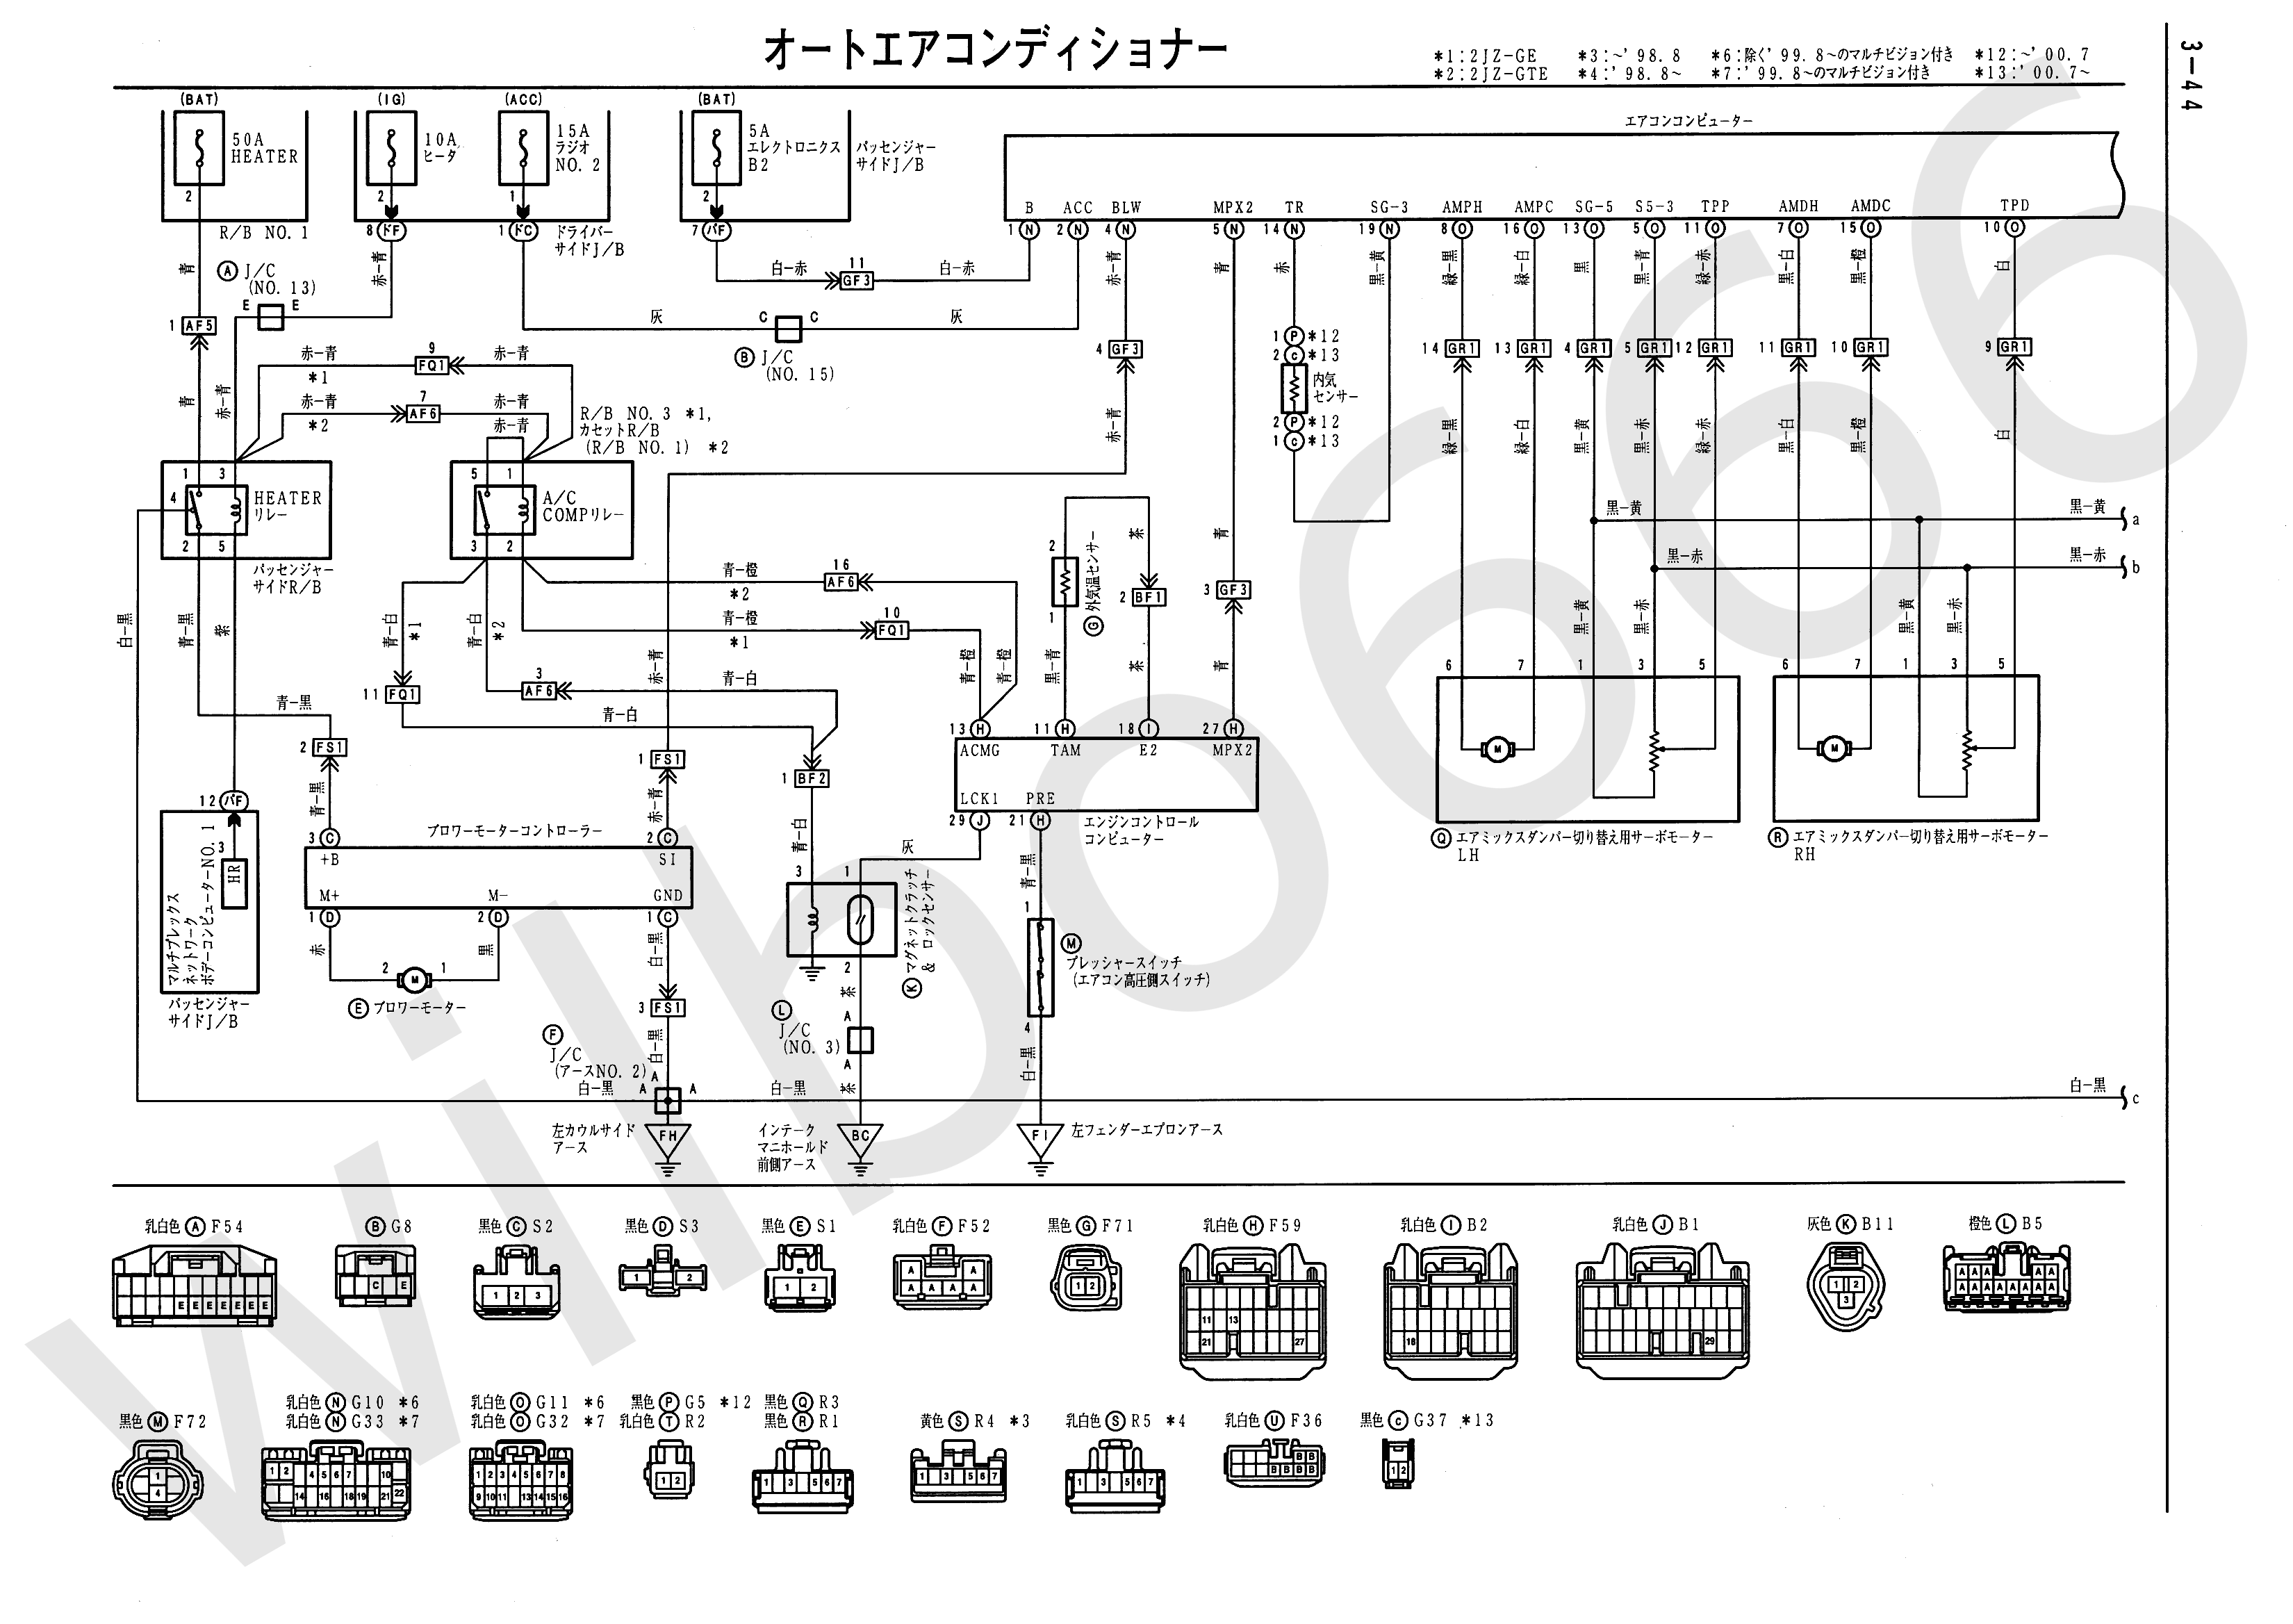 JZS161 Electrical Wiring Diagram 6748505 3 44 wilbo666 2jz gte vvti jzs161 aristo engine wiring 2jzgte wiring diagram at reclaimingppi.co